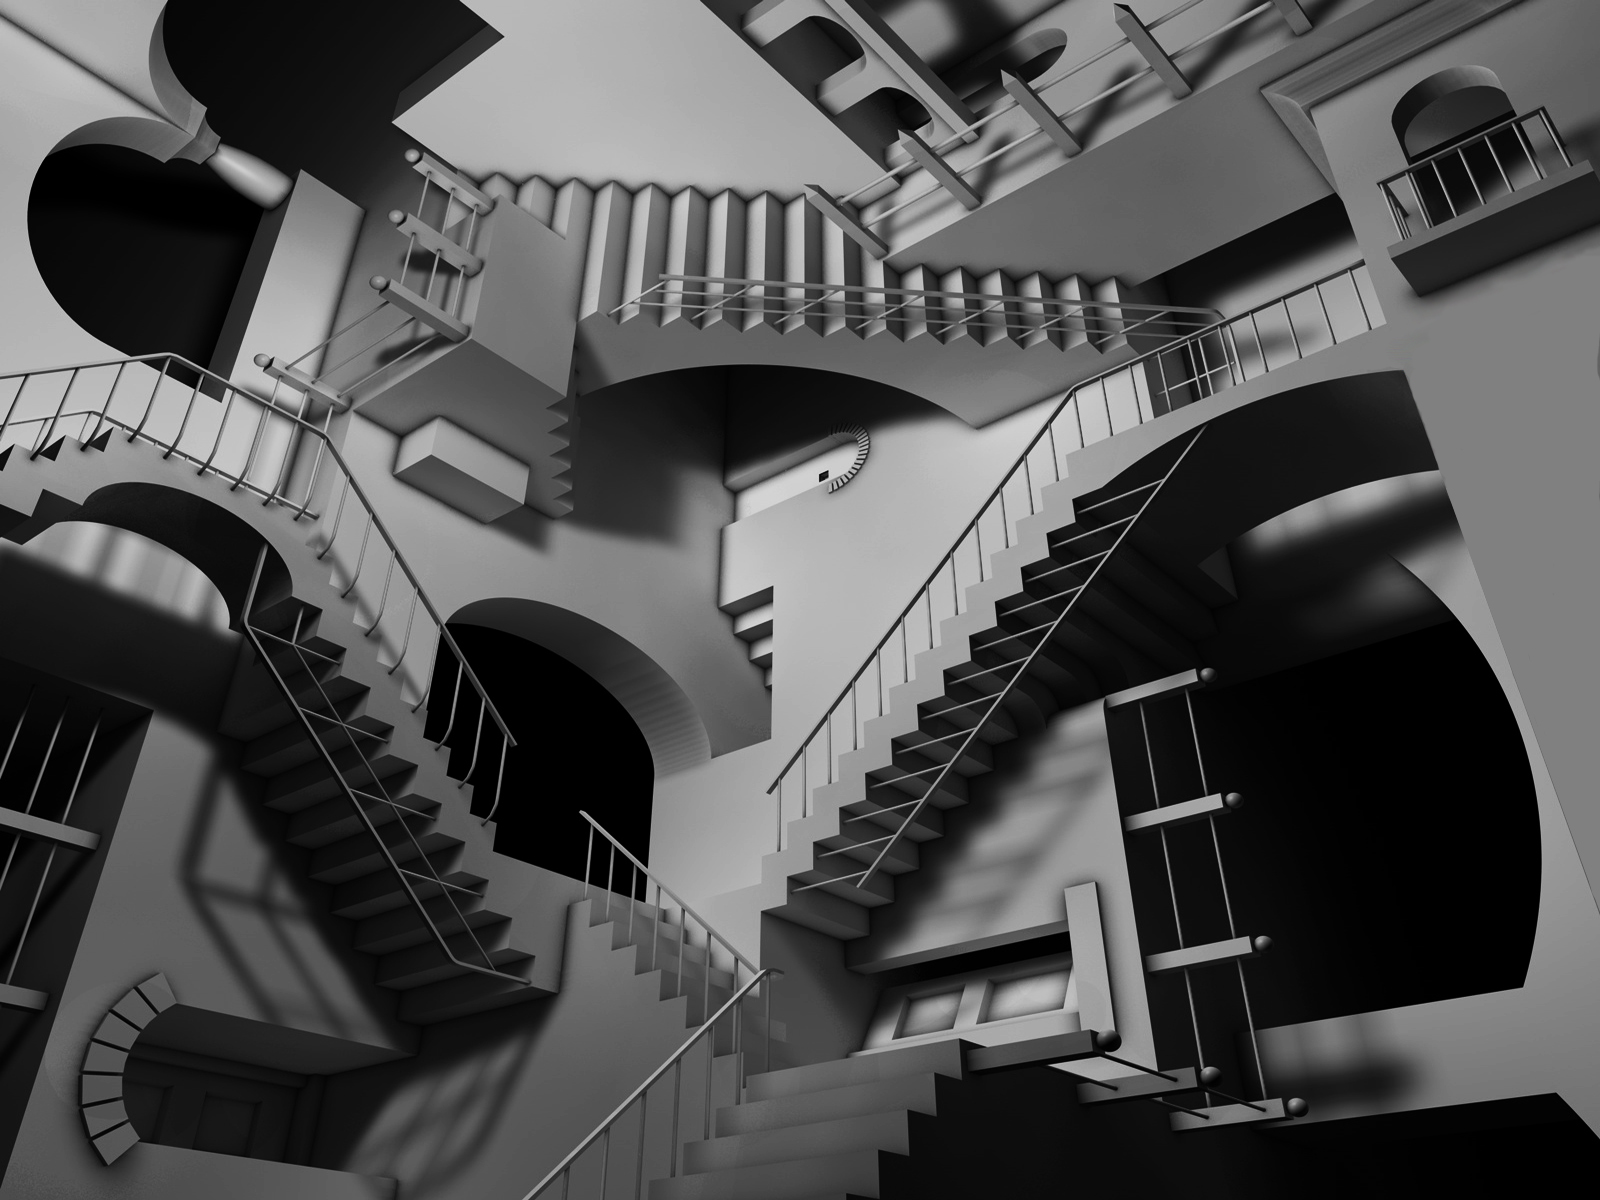 CGI - Cool  - Crazy Stairs Wallpaper